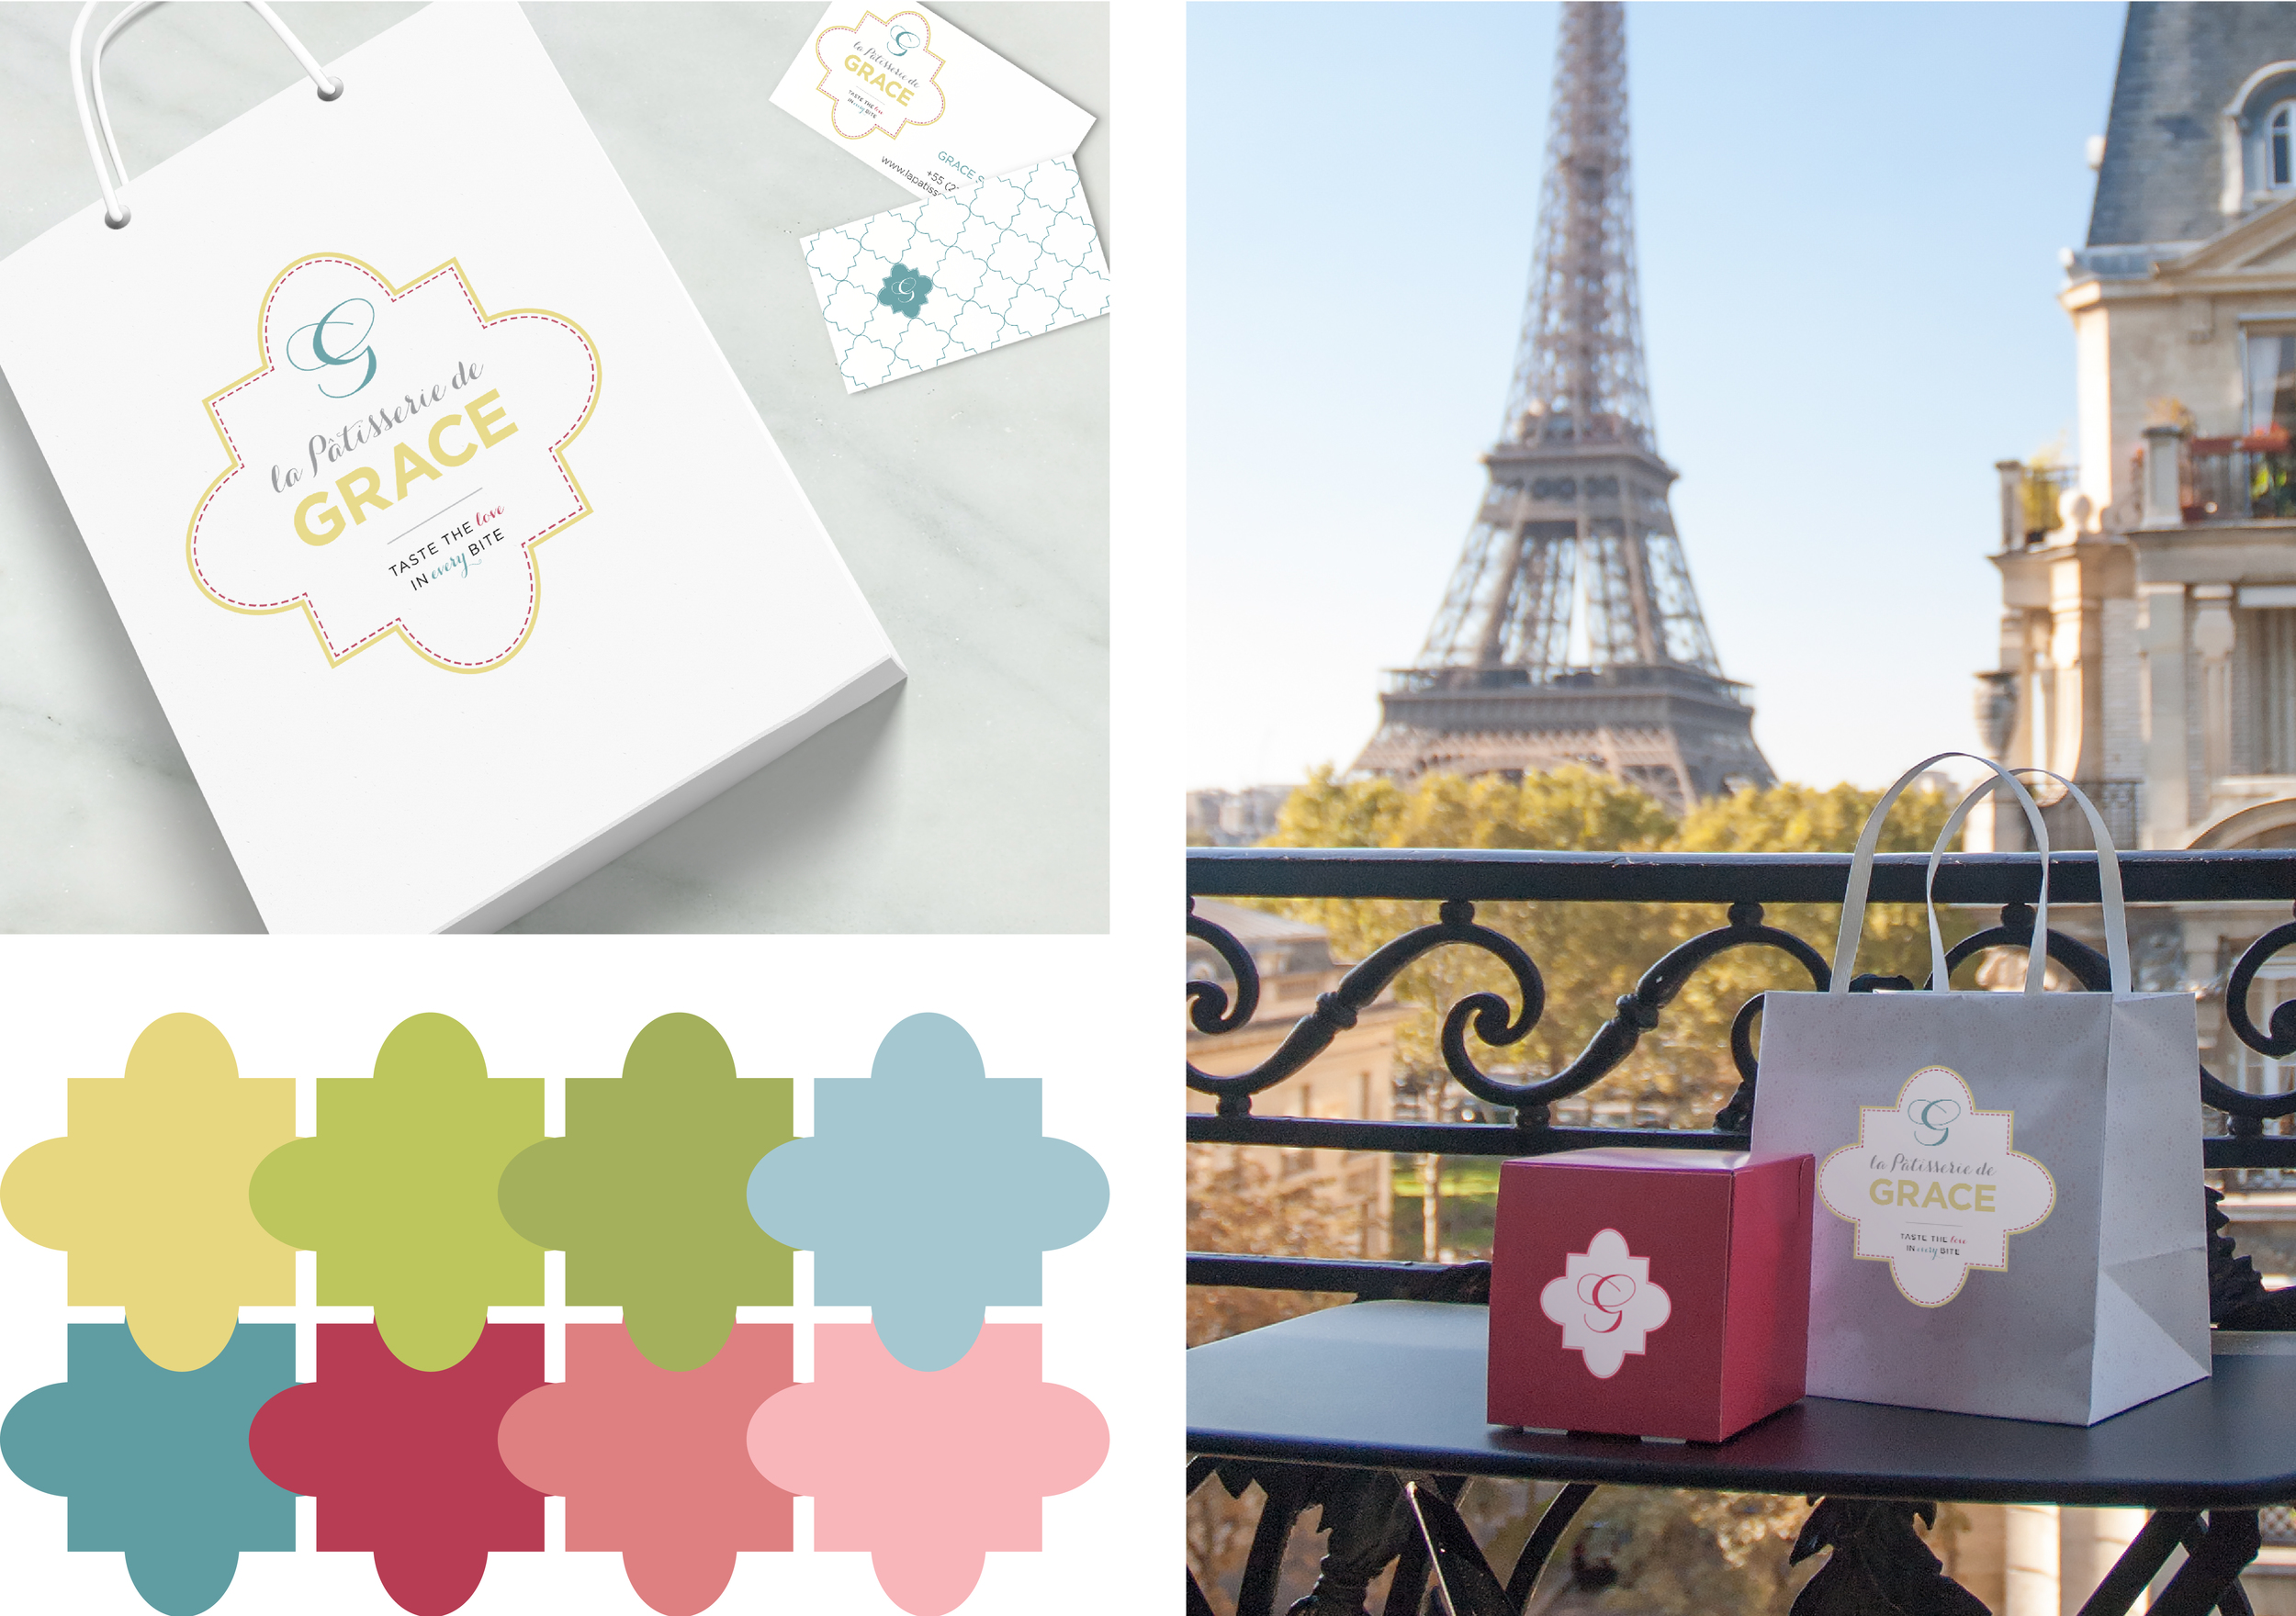 Branding implementation for La Patisserie de Grace:business card, packaging, gift bags, and patterns